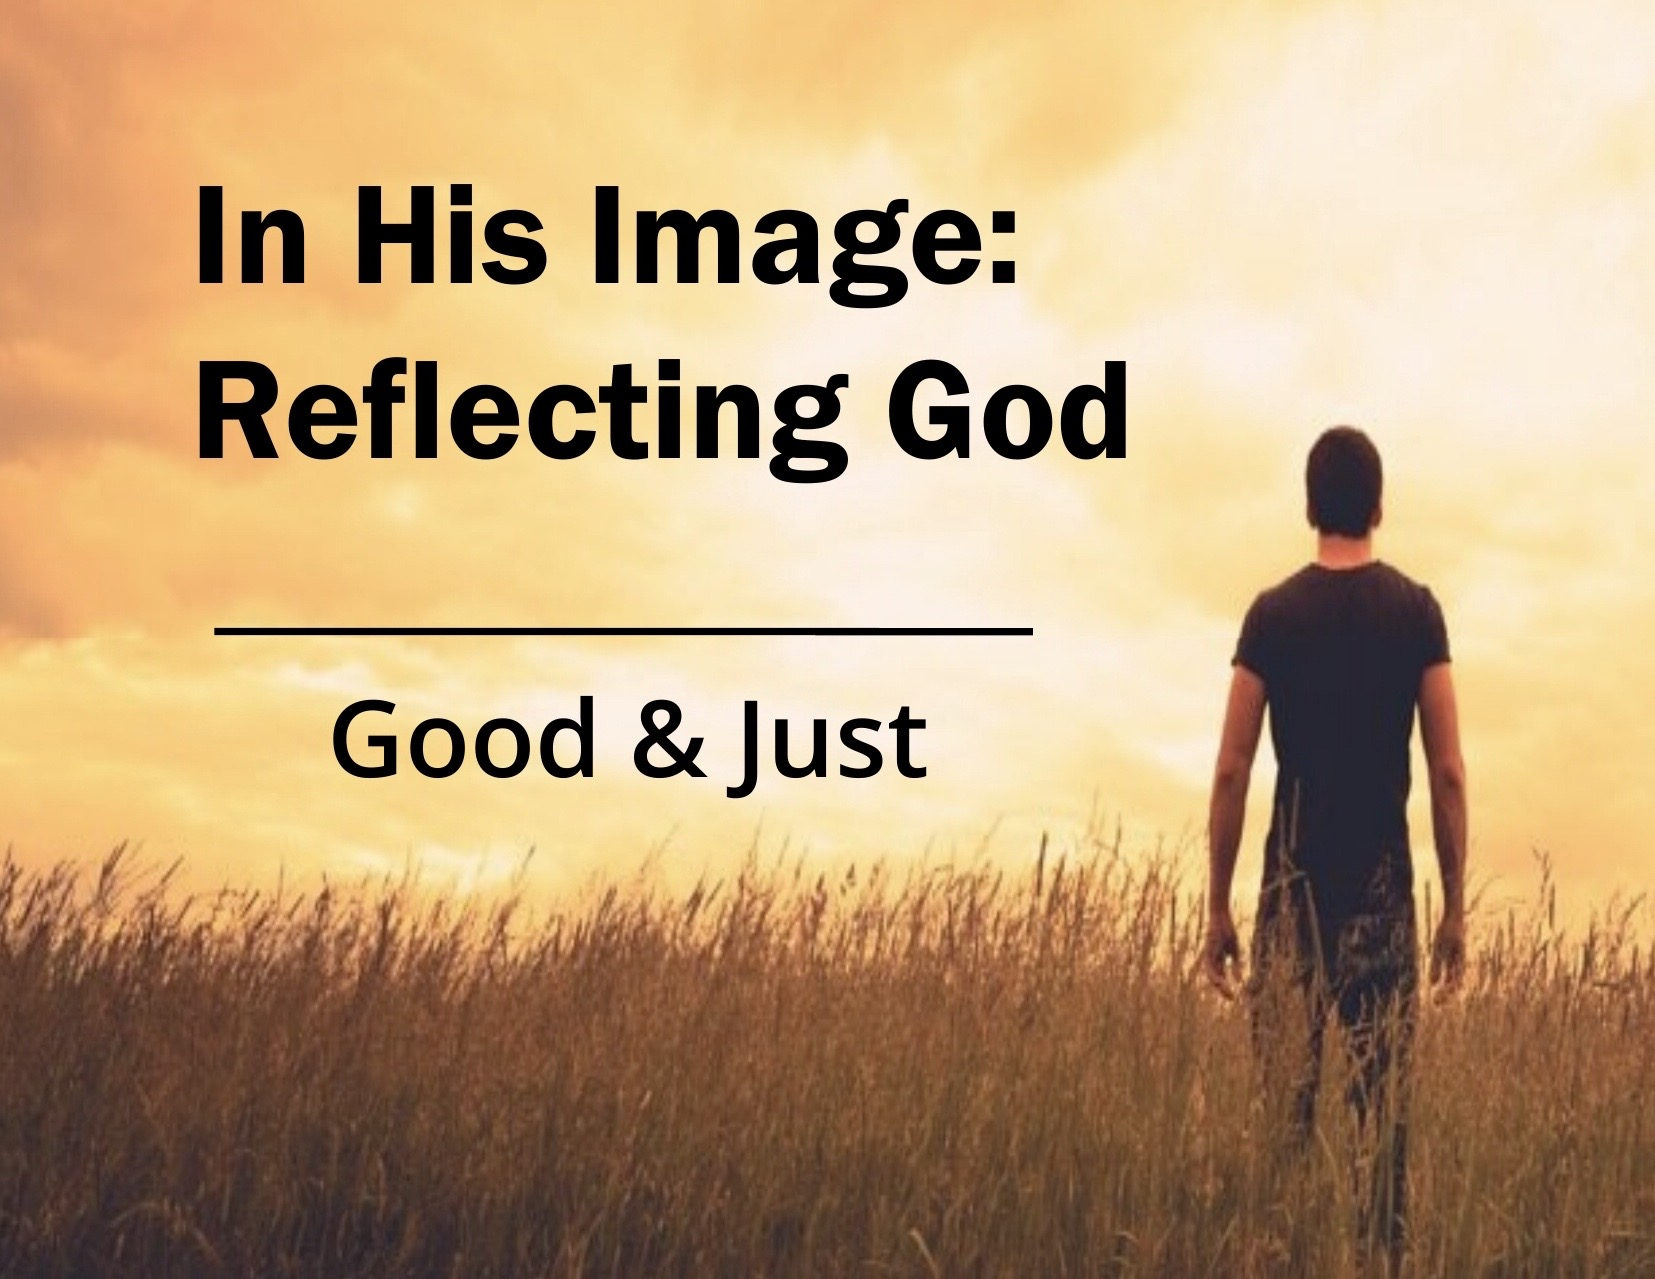 In His Image: Good & Just Image